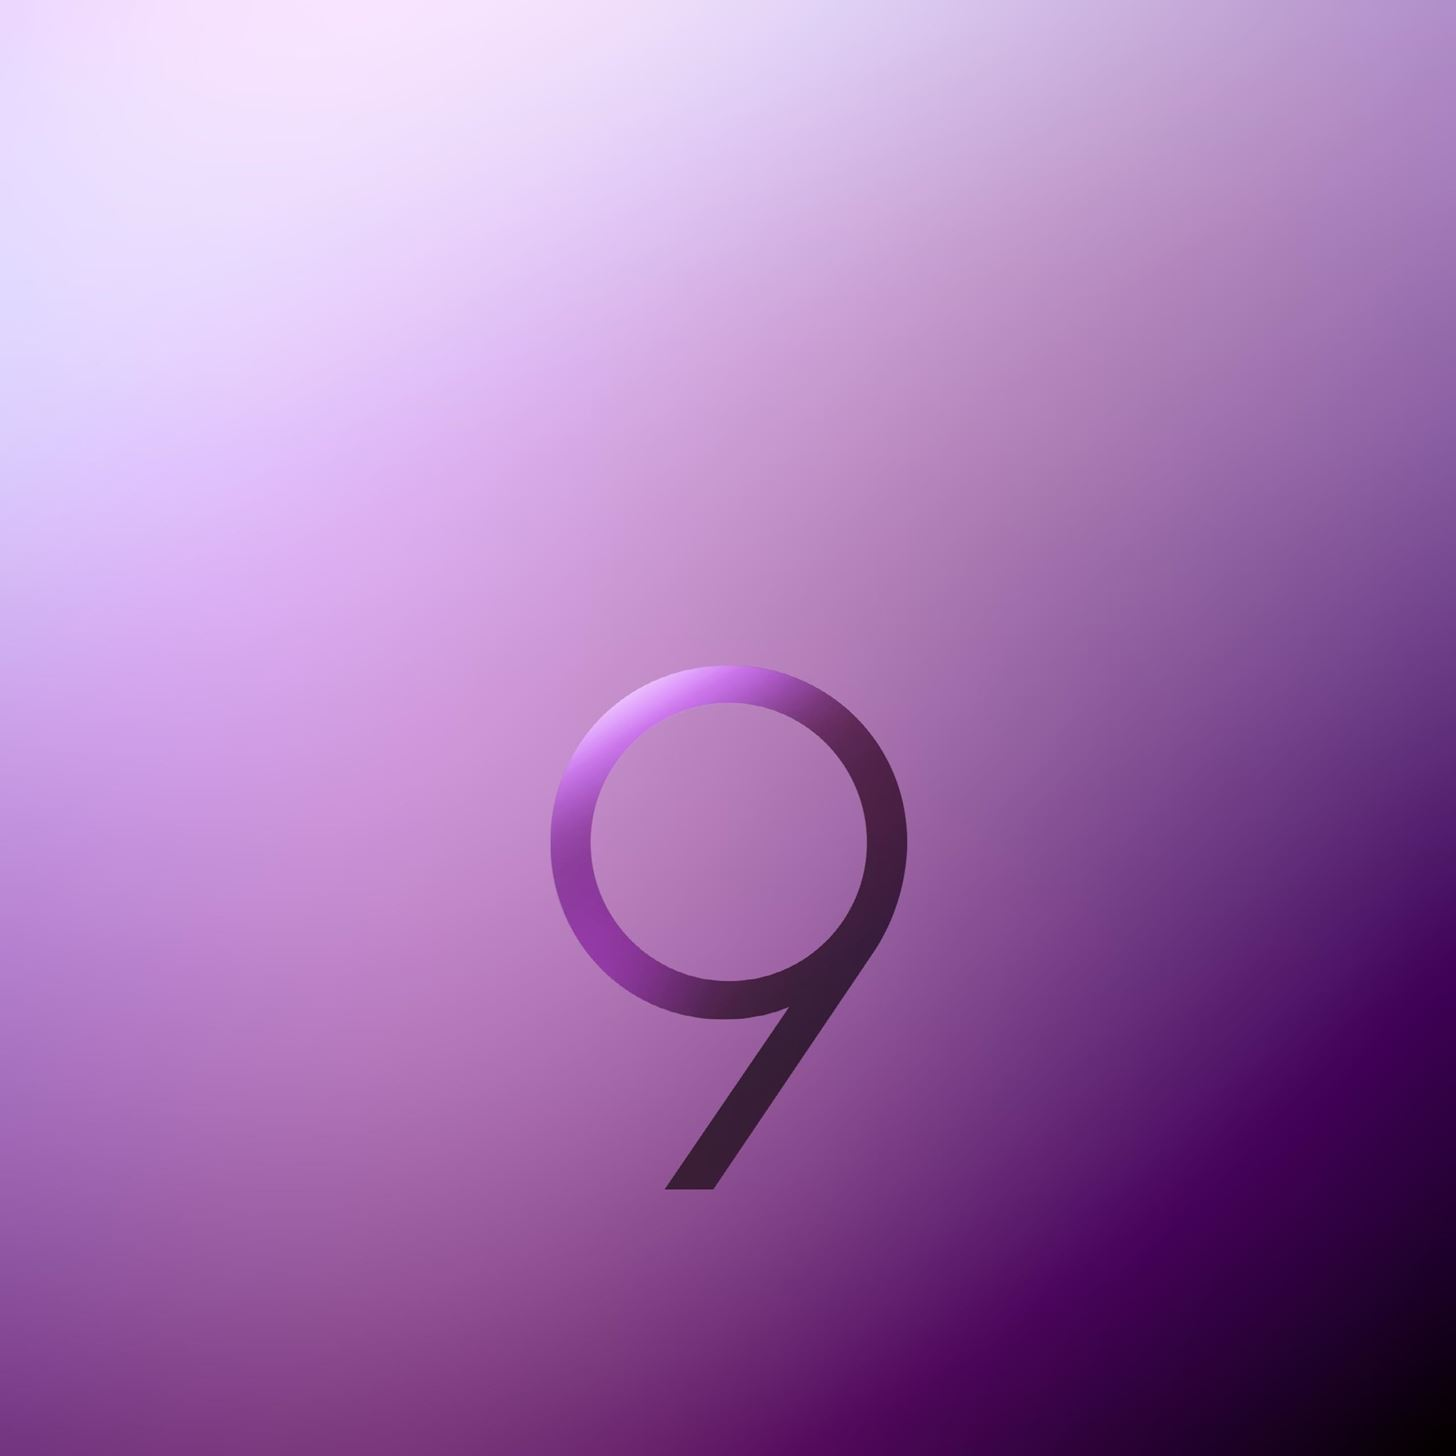 How To Get The Galaxy S9 S New Wallpapers On Any Phone Smartphones